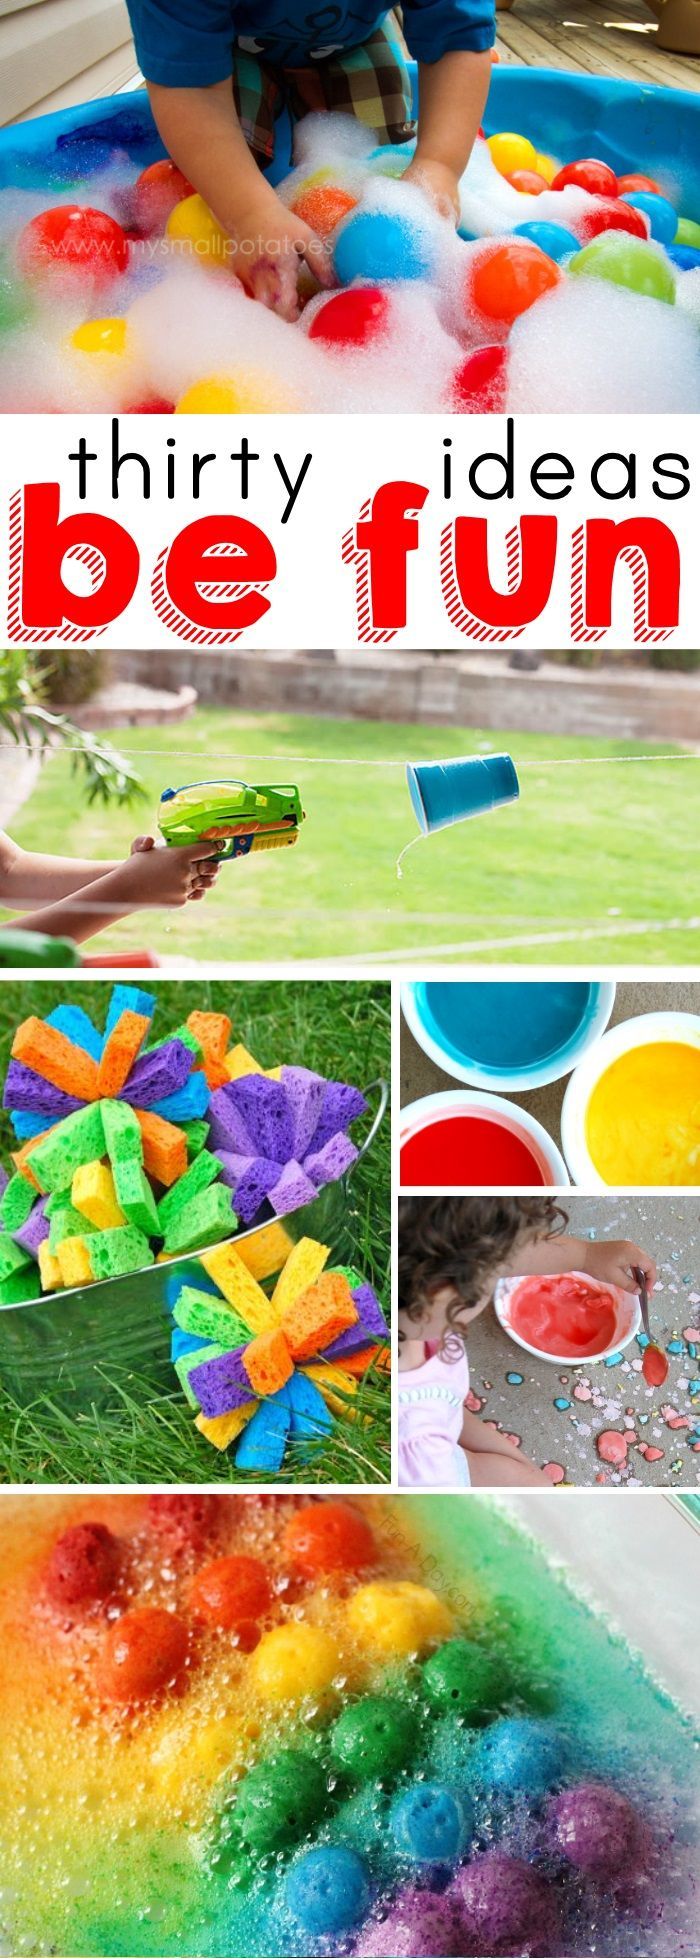 30 Fun Ideas For Summer! Kids will love these and you will feel like a cool parent. http://www.douantpools.com/